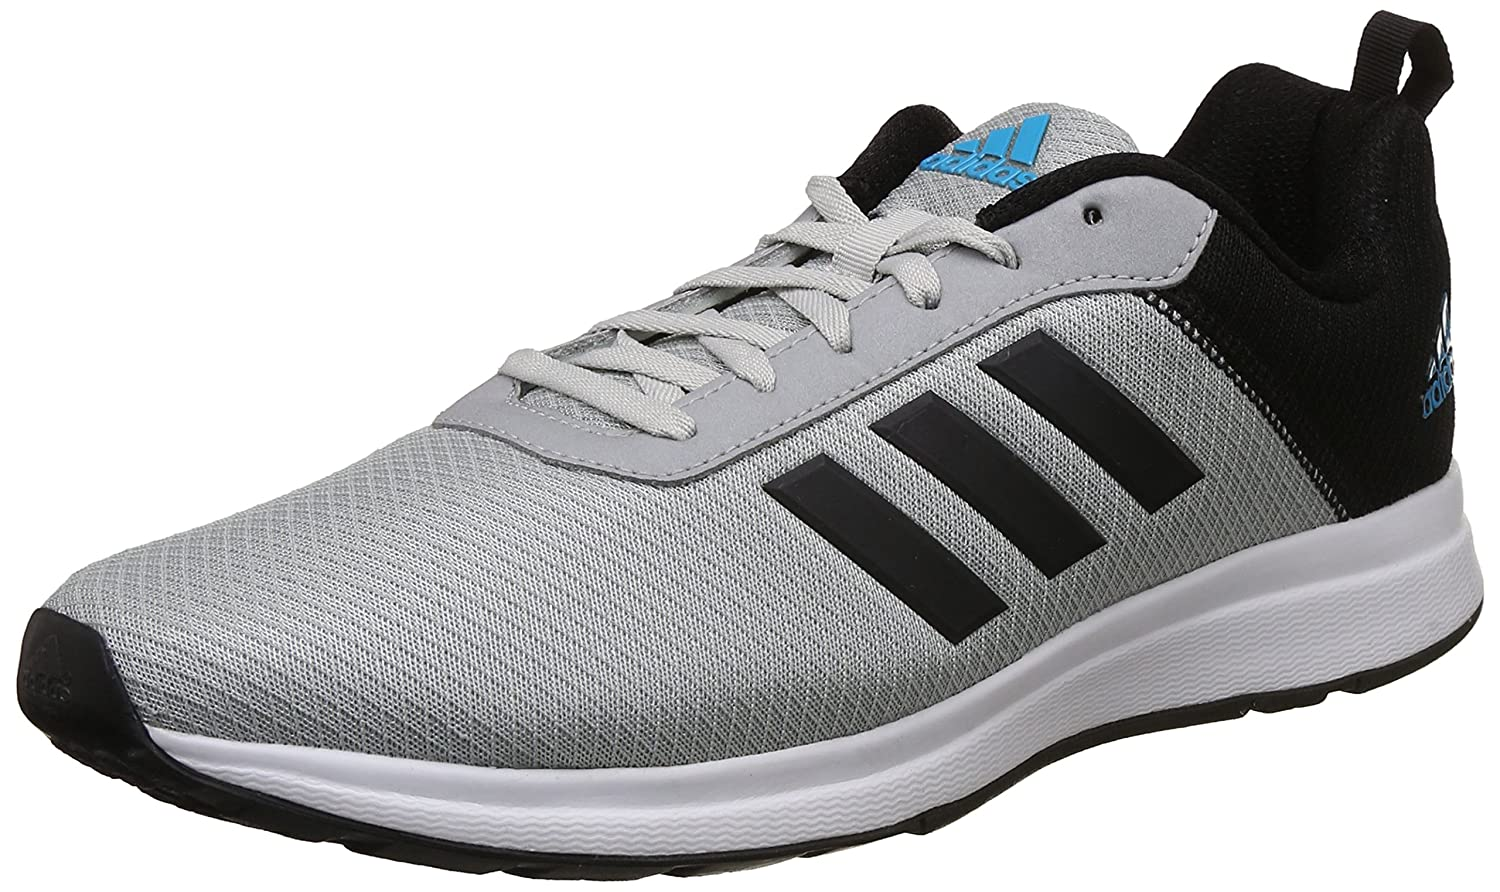 purchase cheap e6ddd 2fbb8 Adidas Mens Adispree 3 M Multi Running Shoes-9 UKIndia (43 13 EU)  (CJ0052) Buy Online at Low Prices in India - Amazon.in